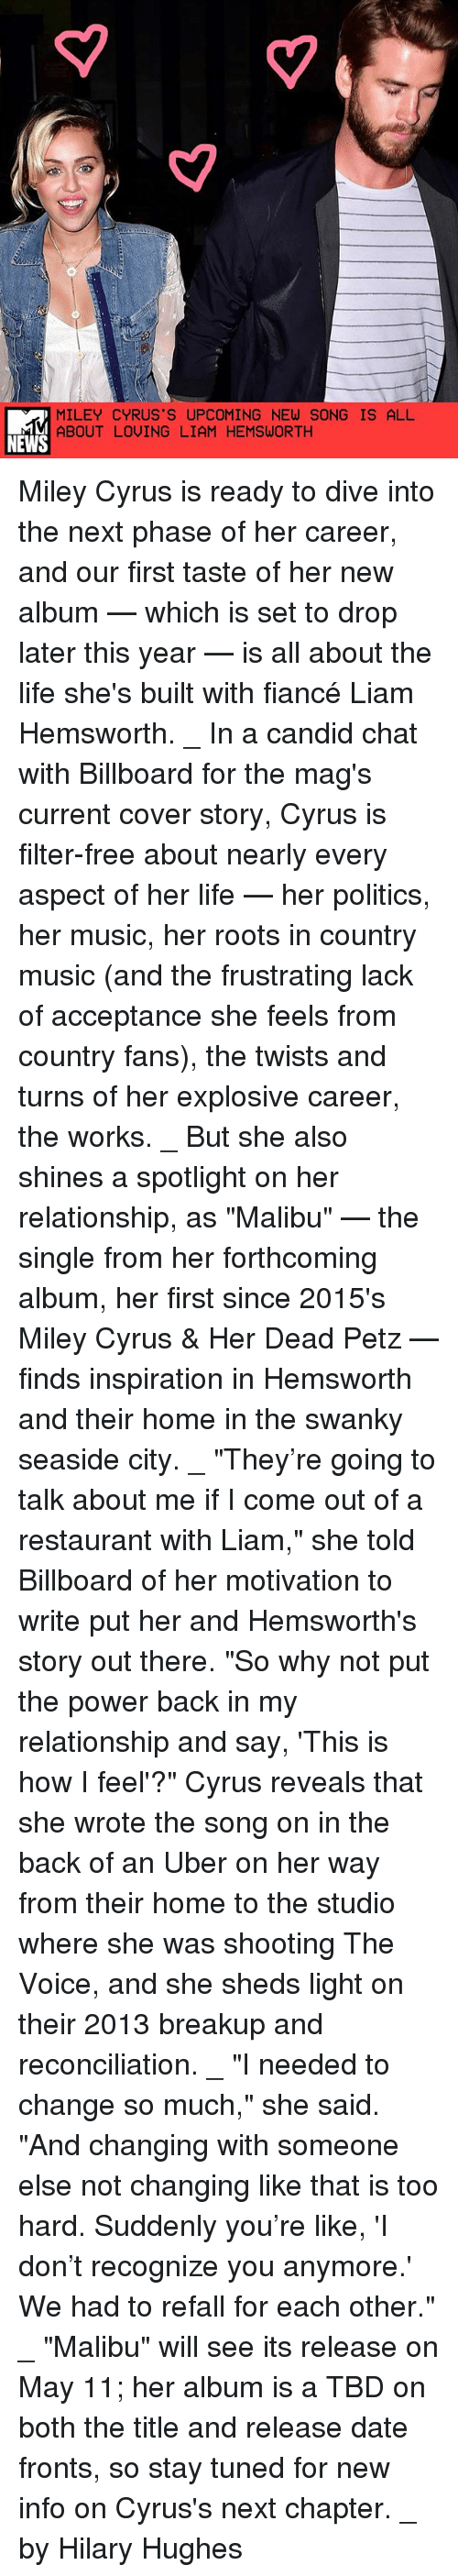 """Candide: MILEY CYRUS S UPCOMING NEW SONG IS ALL  ABOUT LOVING LIAM HEMSWORTH  NEWS Miley Cyrus is ready to dive into the next phase of her career, and our first taste of her new album — which is set to drop later this year — is all about the life she's built with fiancé Liam Hemsworth. _ In a candid chat with Billboard for the mag's current cover story, Cyrus is filter-free about nearly every aspect of her life — her politics, her music, her roots in country music (and the frustrating lack of acceptance she feels from country fans), the twists and turns of her explosive career, the works. _ But she also shines a spotlight on her relationship, as """"Malibu"""" — the single from her forthcoming album, her first since 2015's Miley Cyrus & Her Dead Petz — finds inspiration in Hemsworth and their home in the swanky seaside city. _ """"They're going to talk about me if I come out of a restaurant with Liam,"""" she told Billboard of her motivation to write put her and Hemsworth's story out there. """"So why not put the power back in my relationship and say, 'This is how I feel'?"""" Cyrus reveals that she wrote the song on in the back of an Uber on her way from their home to the studio where she was shooting The Voice, and she sheds light on their 2013 breakup and reconciliation. _ """"I needed to change so much,"""" she said. """"And changing with someone else not changing like that is too hard. Suddenly you're like, 'I don't recognize you anymore.' We had to refall for each other."""" _ """"Malibu"""" will see its release on May 11; her album is a TBD on both the title and release date fronts, so stay tuned for new info on Cyrus's next chapter. _ by Hilary Hughes"""